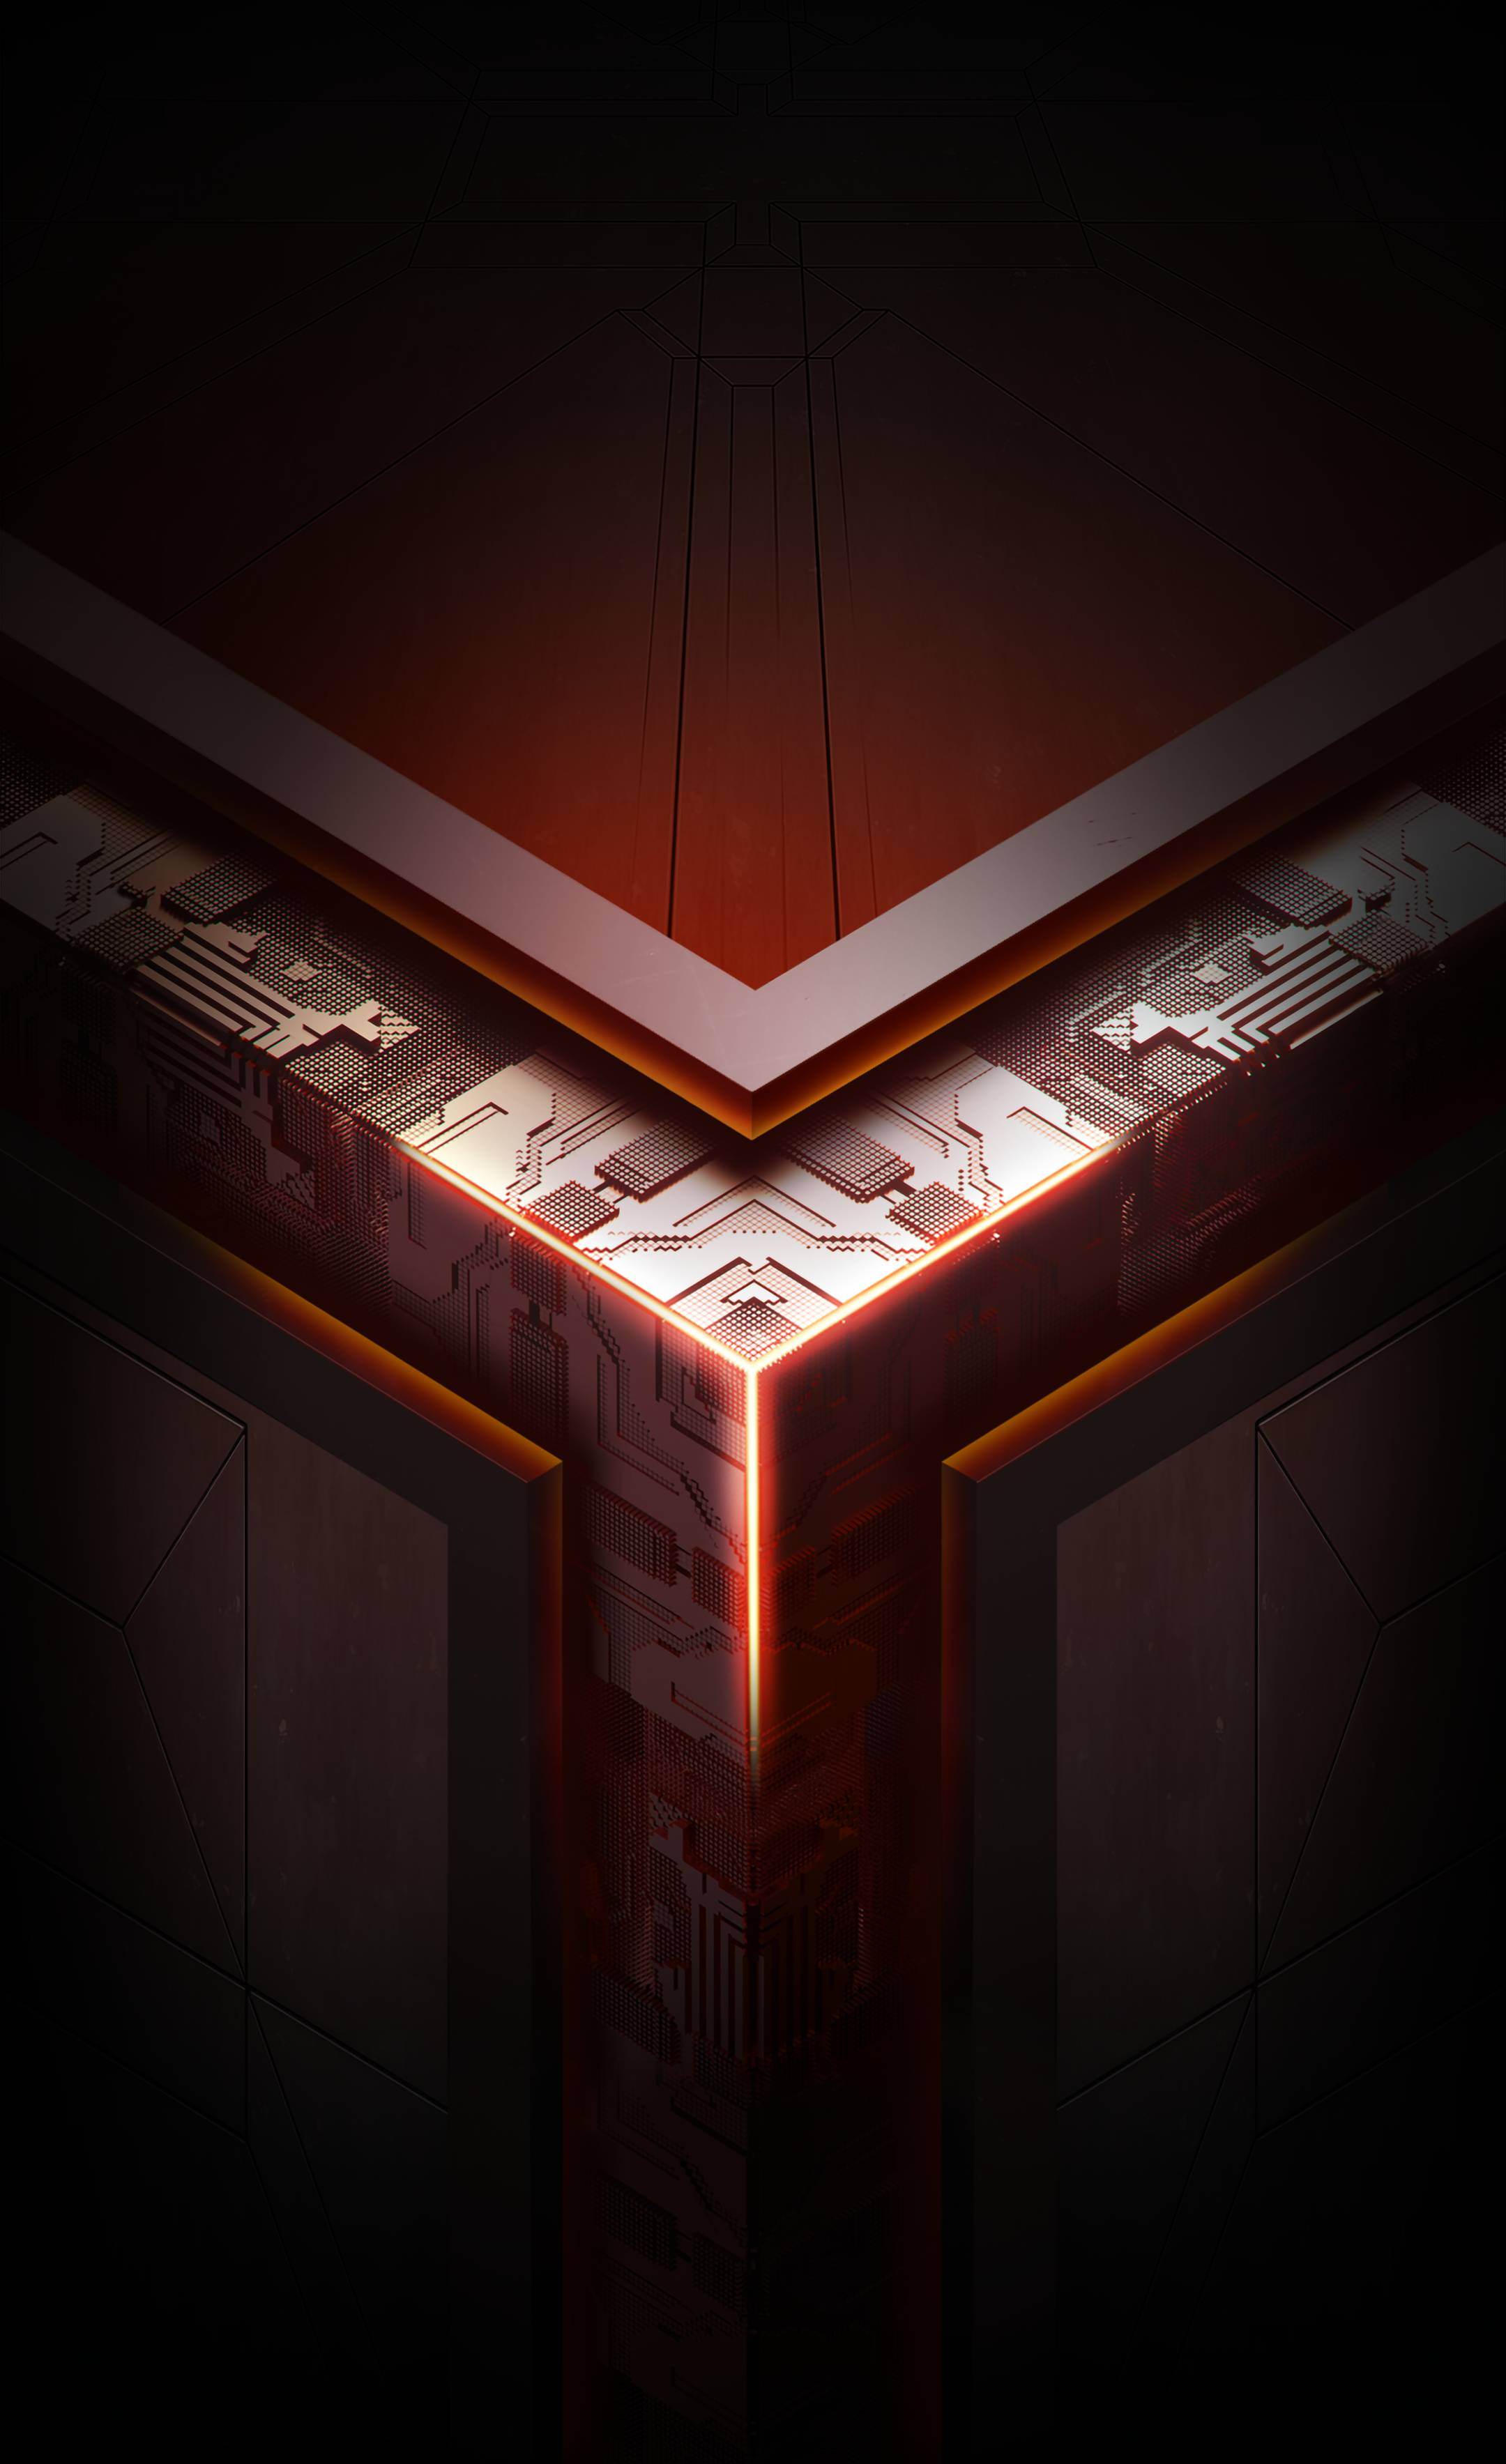 3d Wallpapers For Windows 7 1366x768 Asus Rog Phone Stock Wallpaper 04 2160x3535